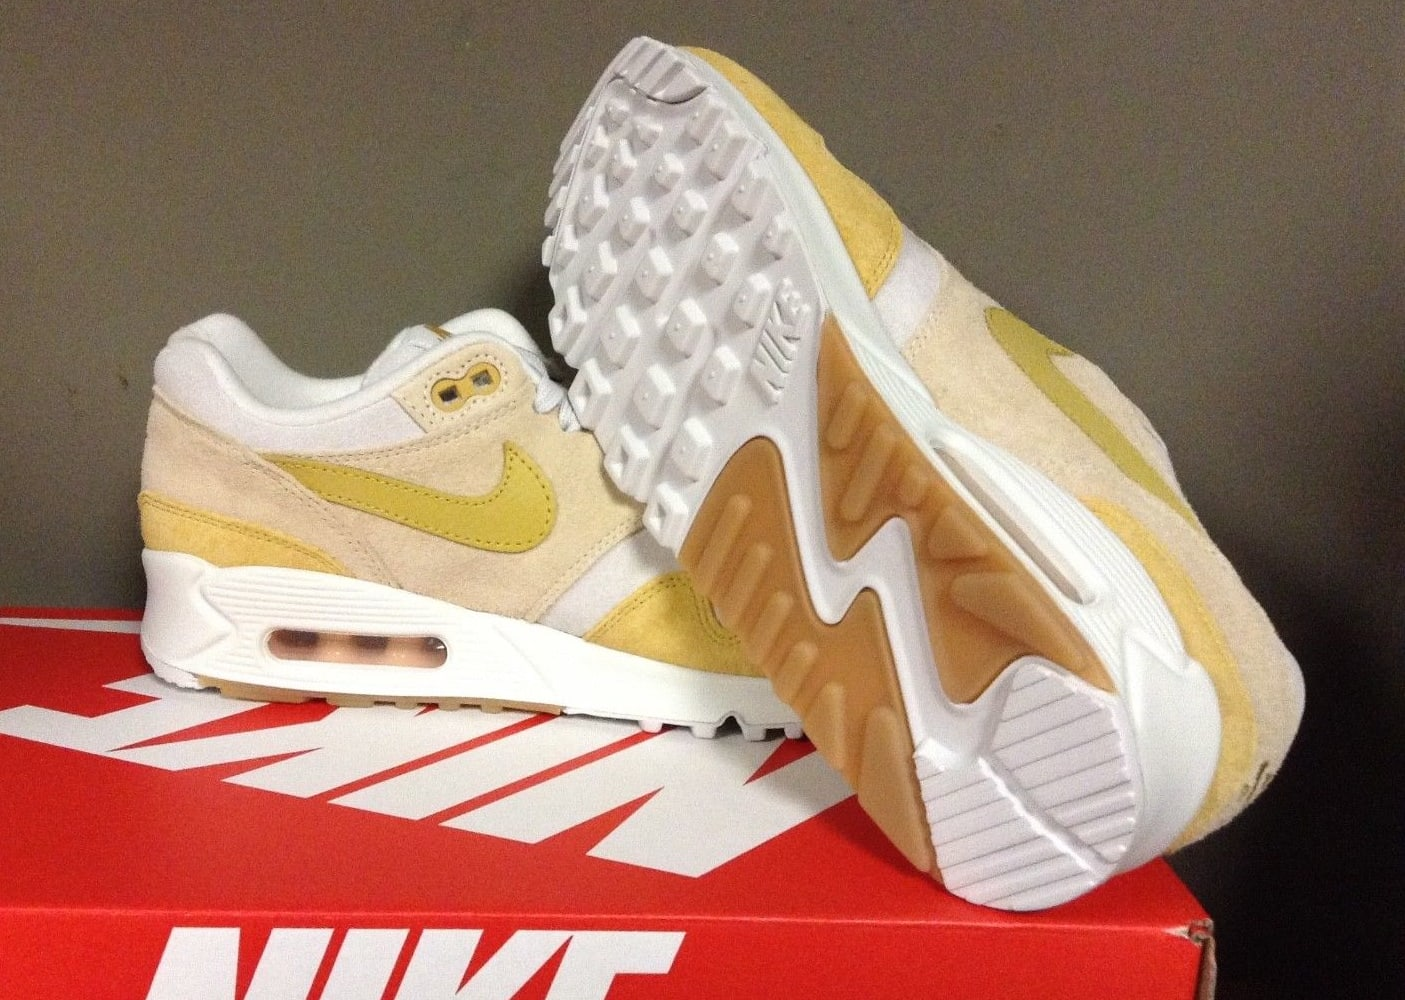 16a44221f80b6 Picture by way of eBay Nike Women's Air Max 90/1 Guava Ice Wheat Gold  Summit White AQ1273-800